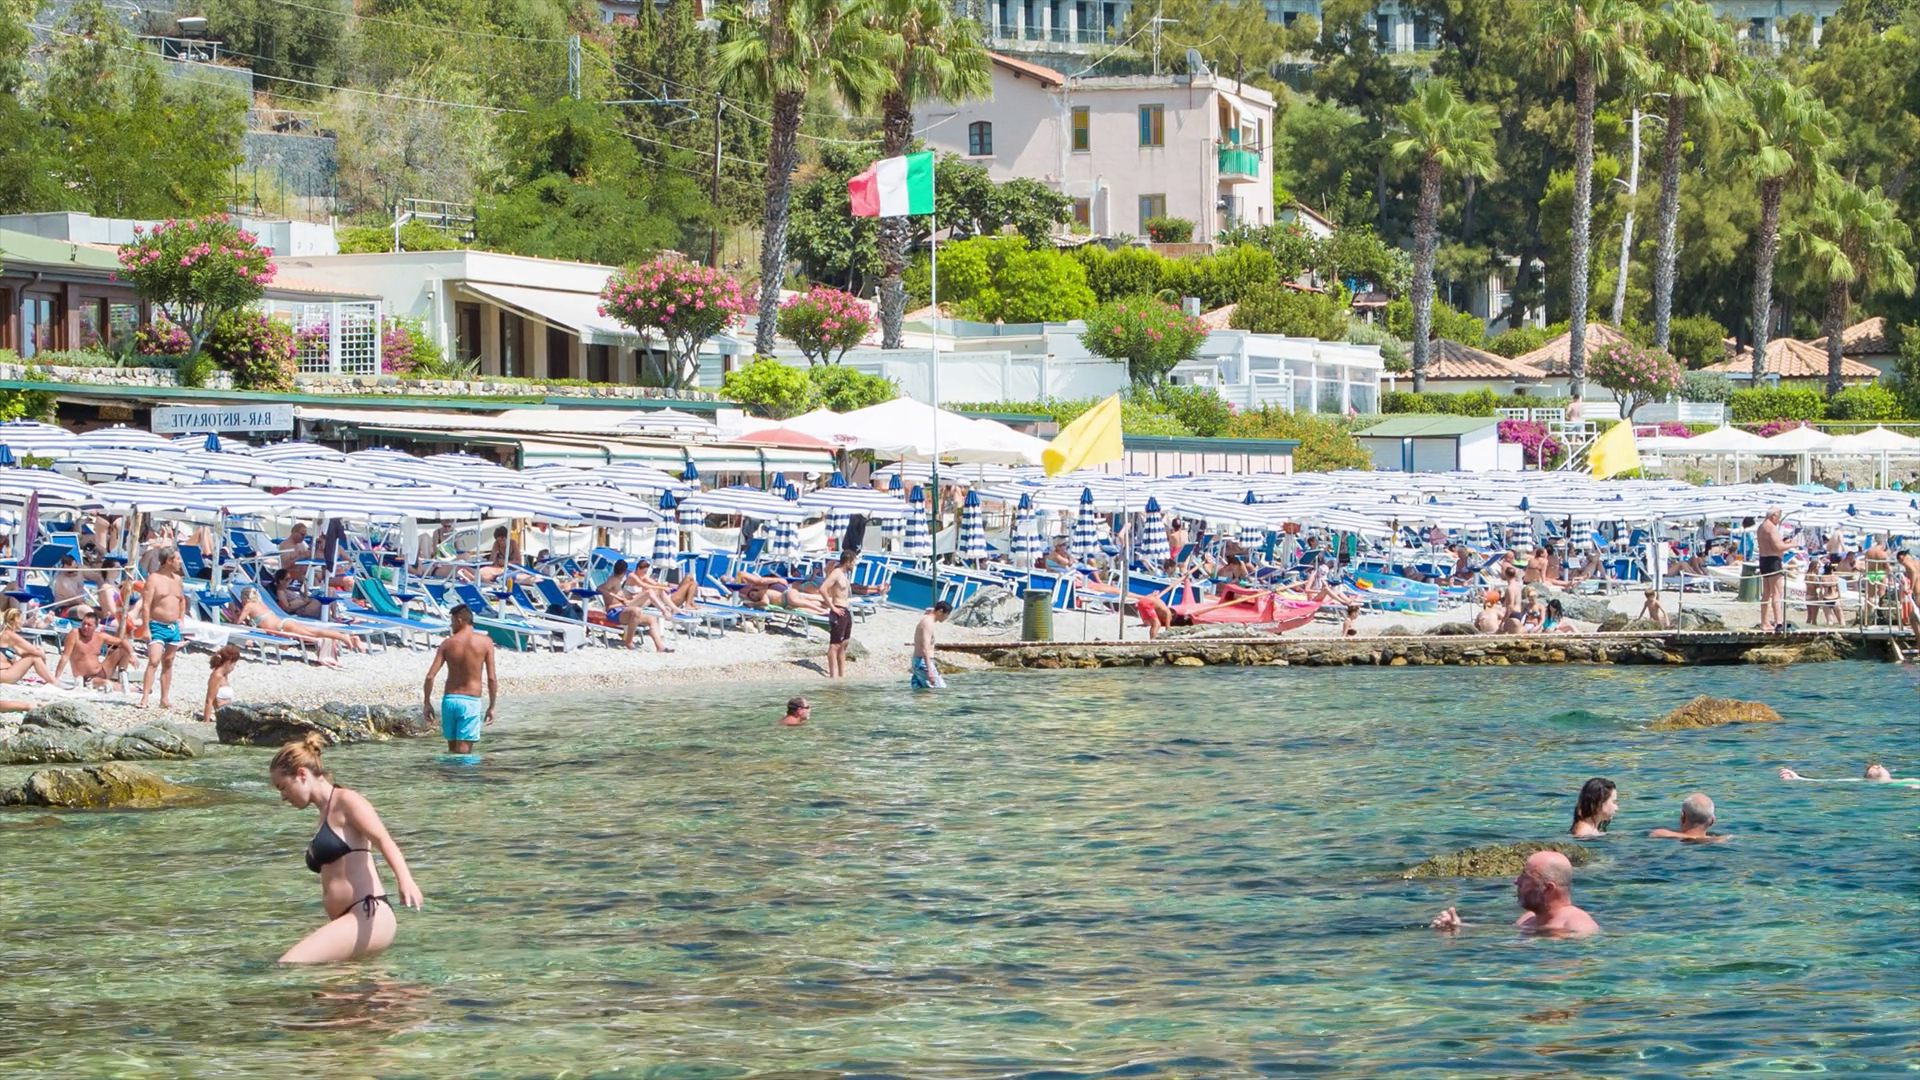 Bella Beach Umbrellas Inside Most Recently Released Taormina Sicily Popular Isola Bella Beachfront With Visitors Swimming And  Enjoying Umbrellas And Chairs On The Famous Italian Resort Town Beach Stock (Gallery 16 of 20)